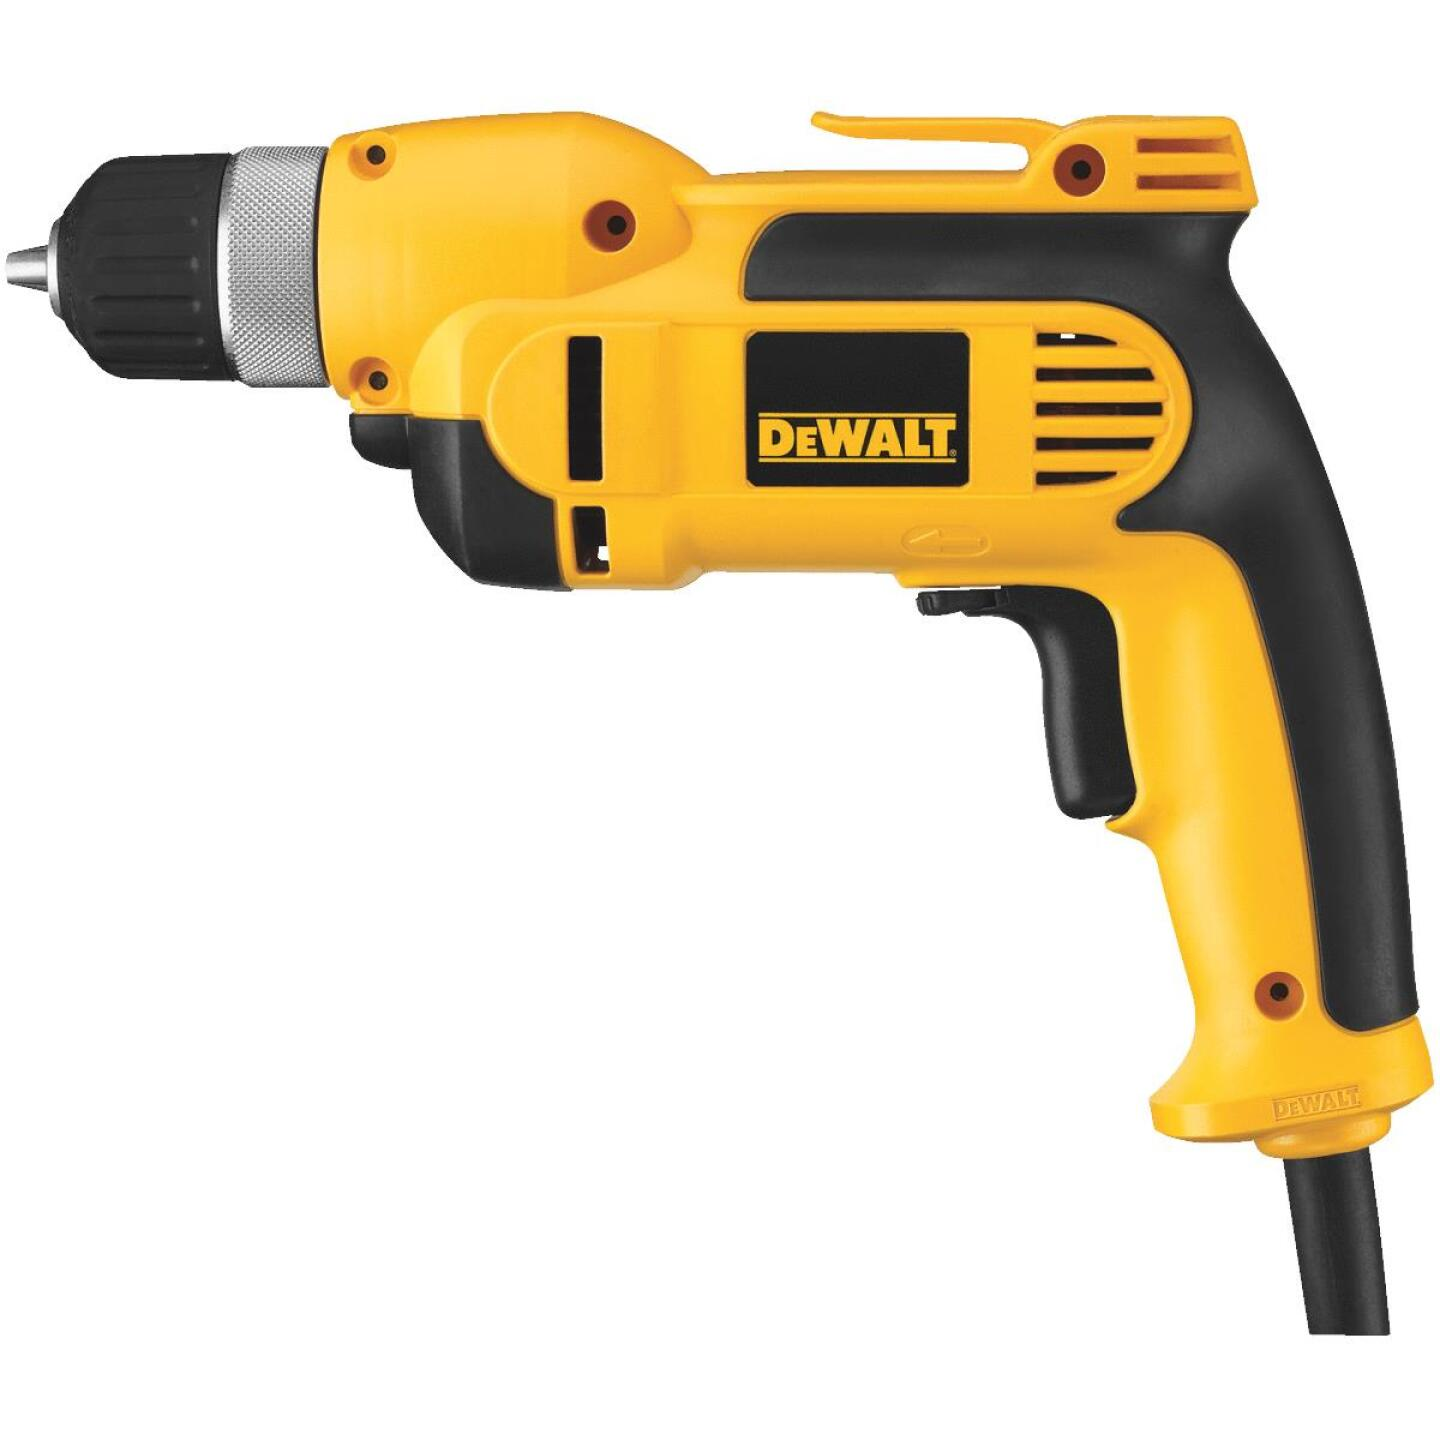 DeWalt 3/8 In. 8-Amp Keyless Electric Drill with Case Image 1